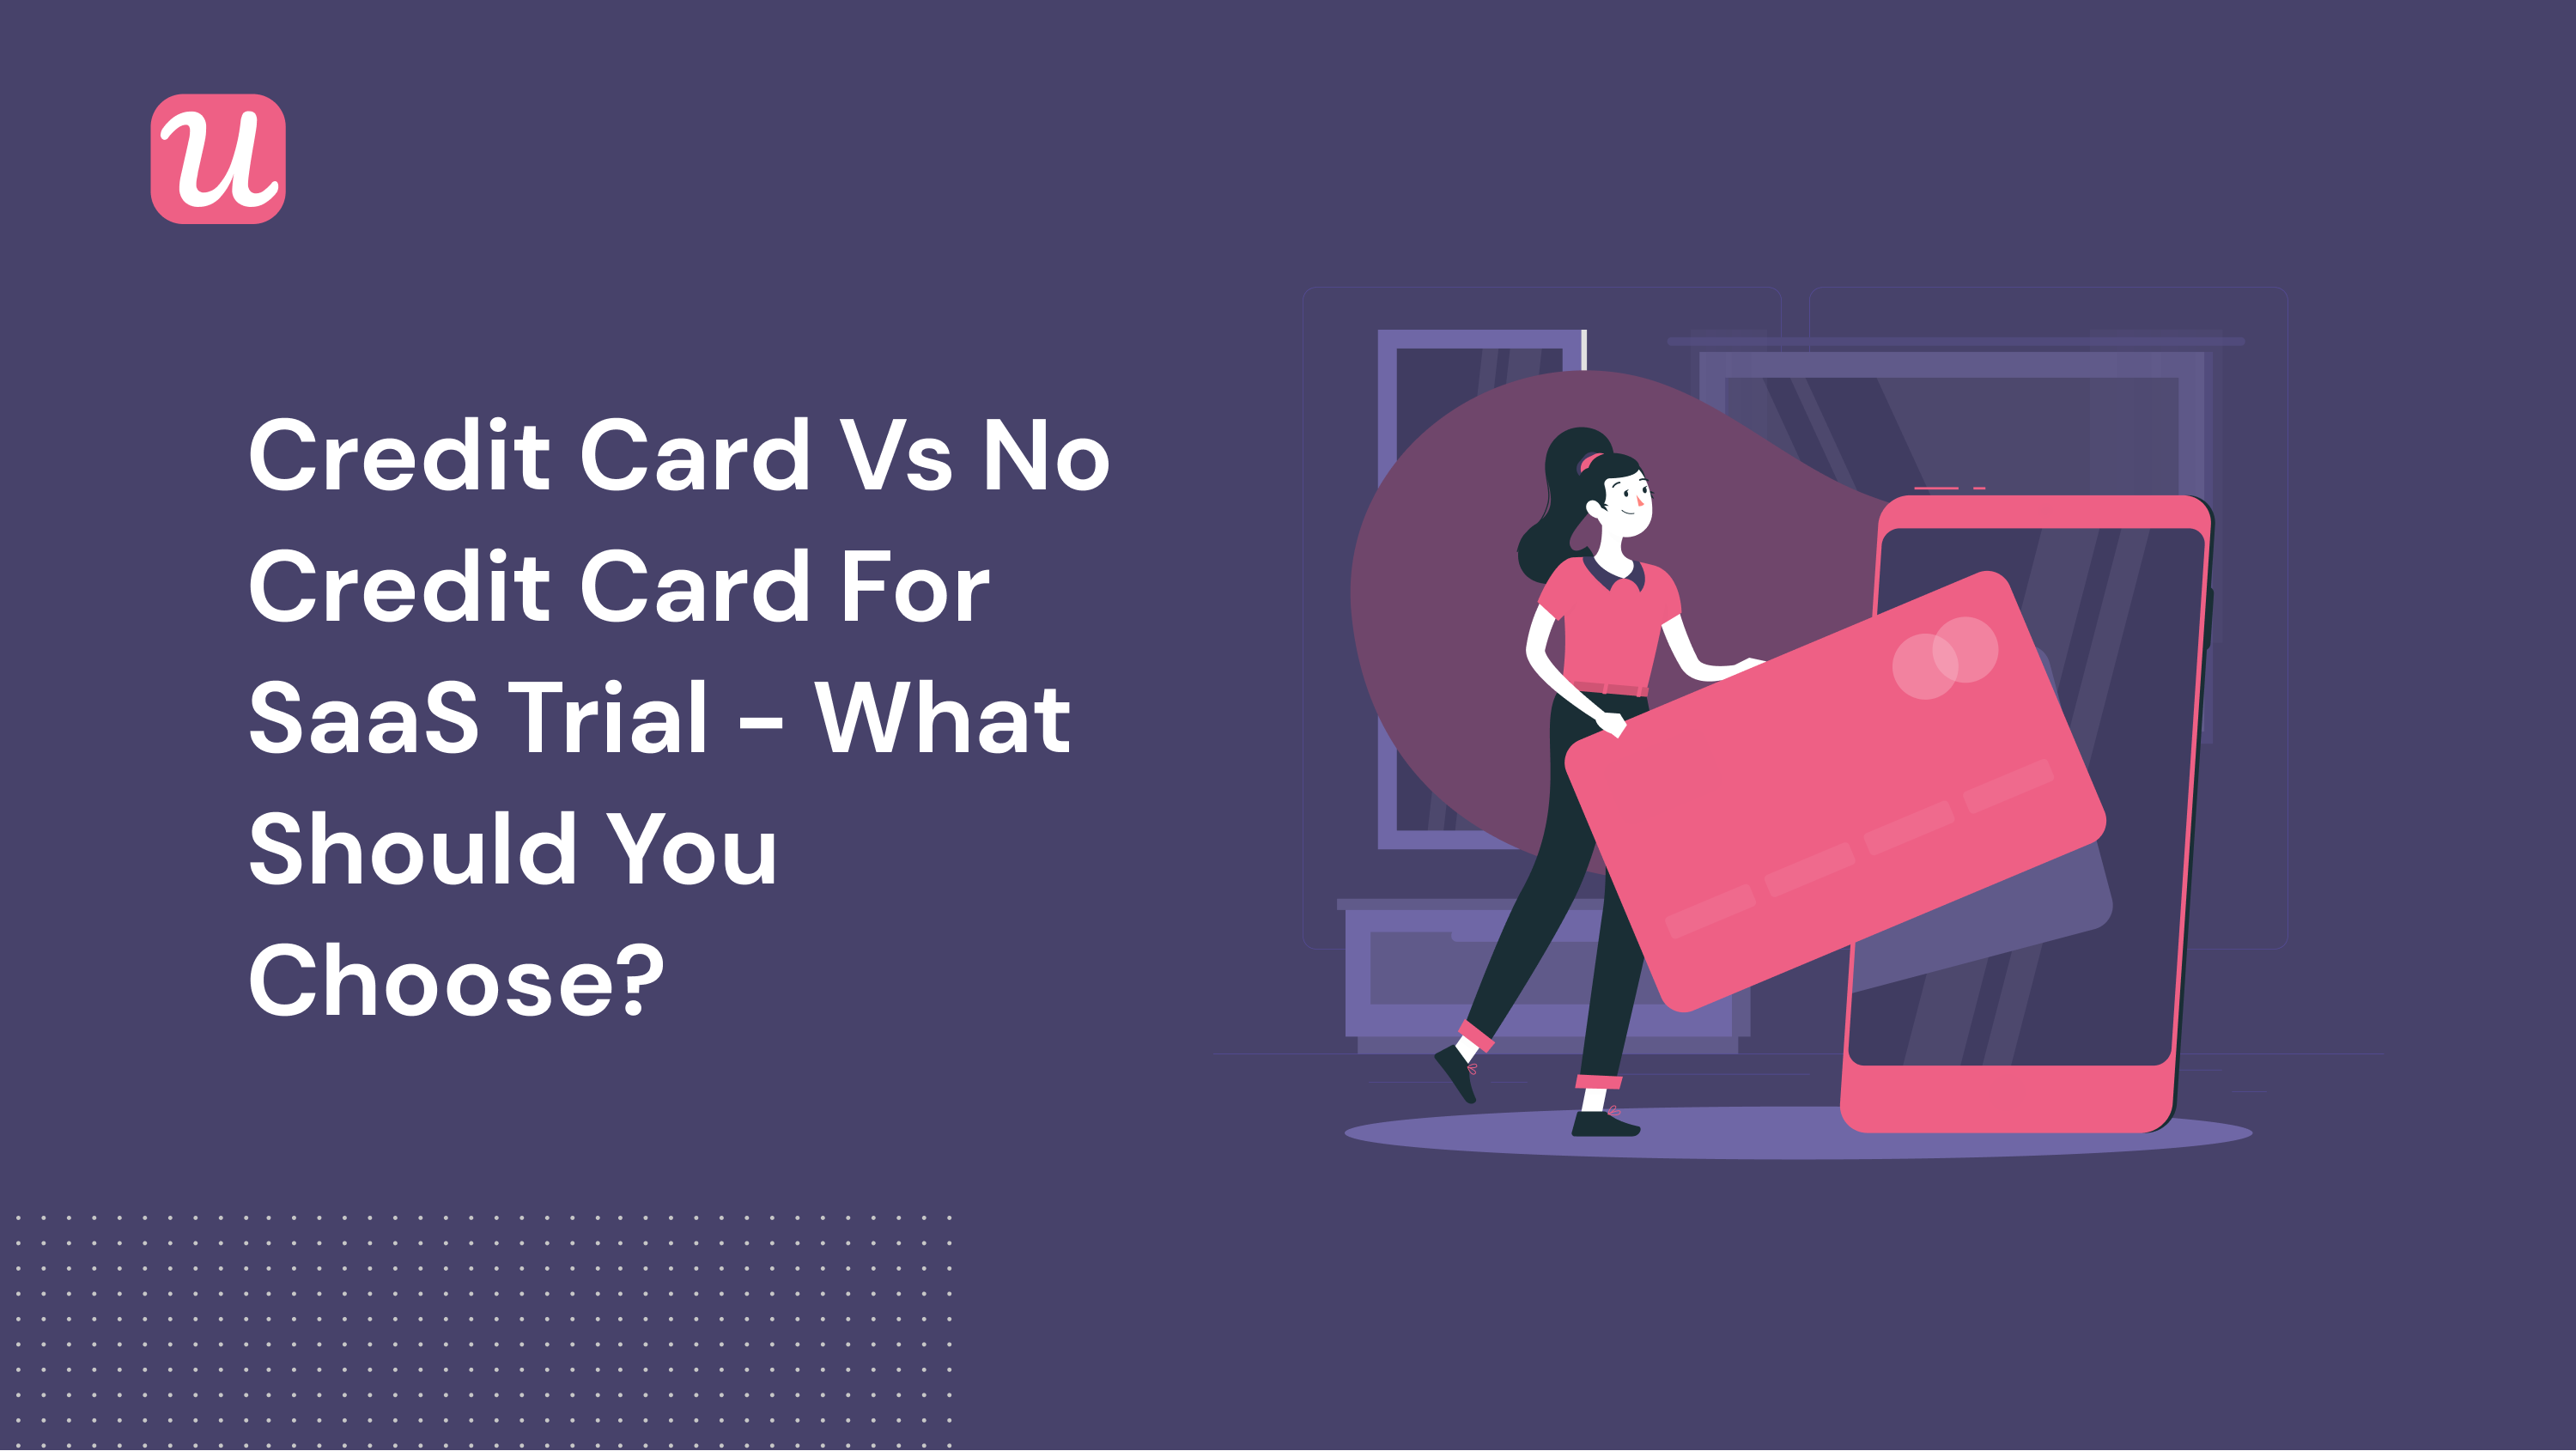 Credit card vs no credit card for SaaS trial - what should you choose_